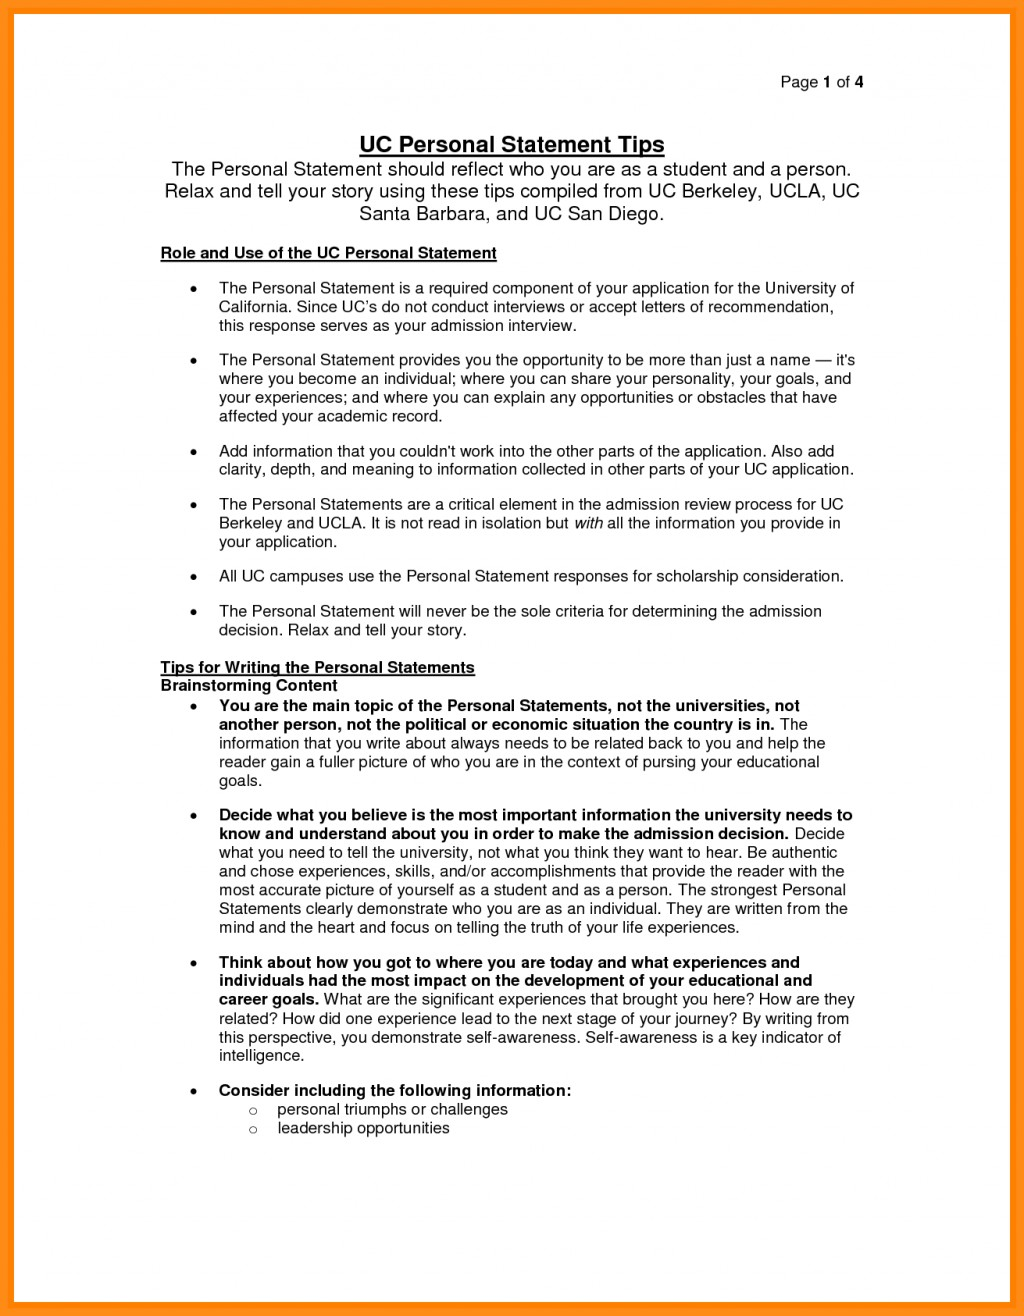 011 Essay Example Uc Personal Statement Prompt Examples Of Statements For Template Mrnpttfa Application Imposing Prompts 2016-17 1 Berkeley 2017 Large